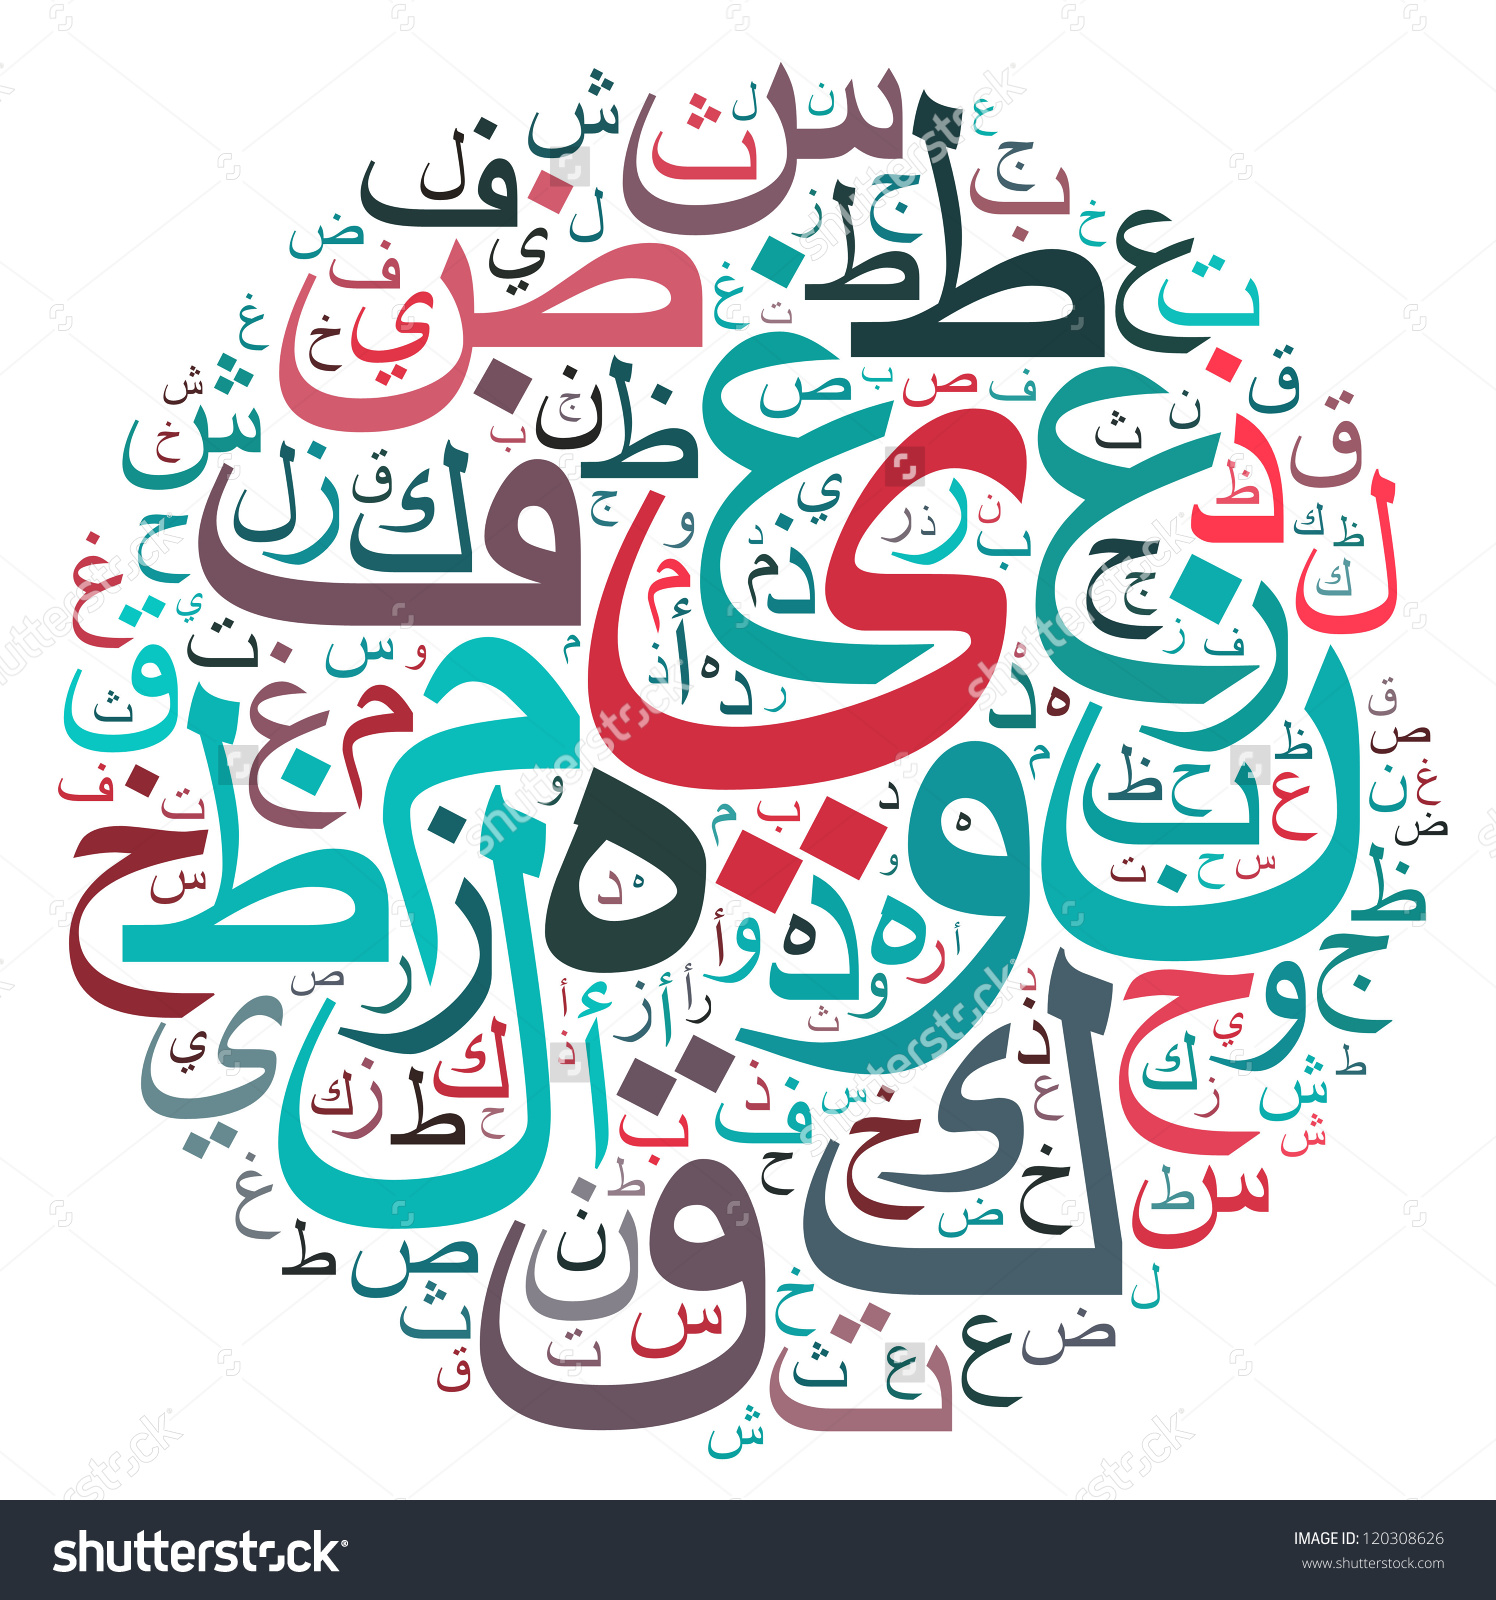 Clipart arabic alphabet image library download Clipart arabic alphabet - ClipartFest image library download